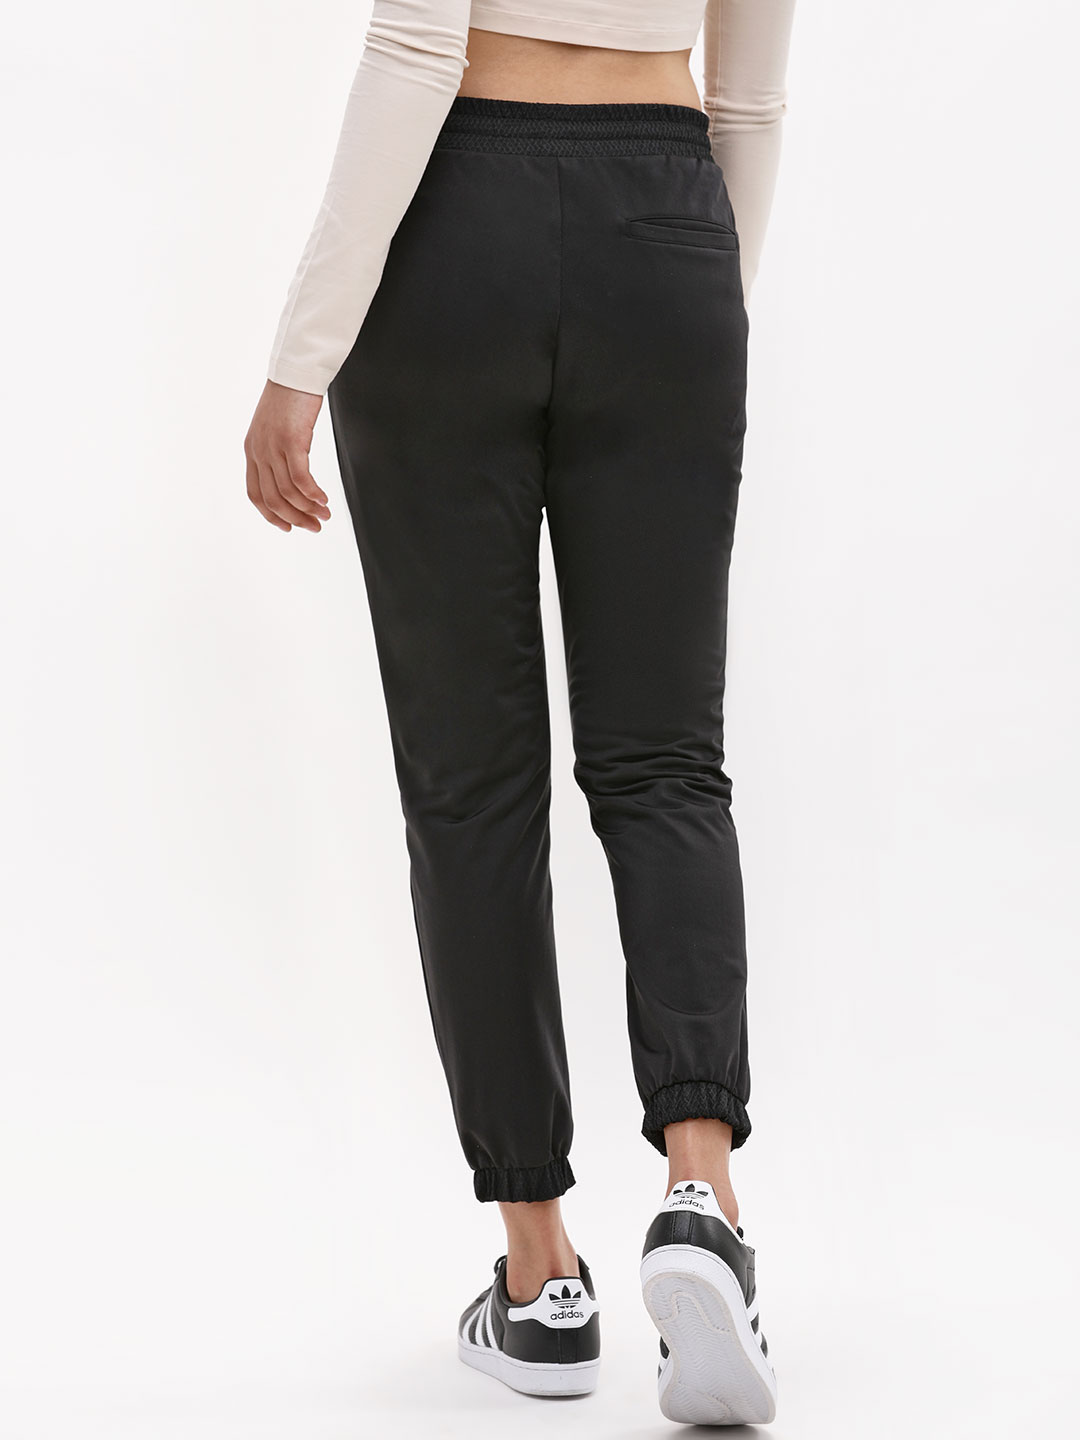 Buy Adidas Originals Black Clrdo Trackpants for Girls Online